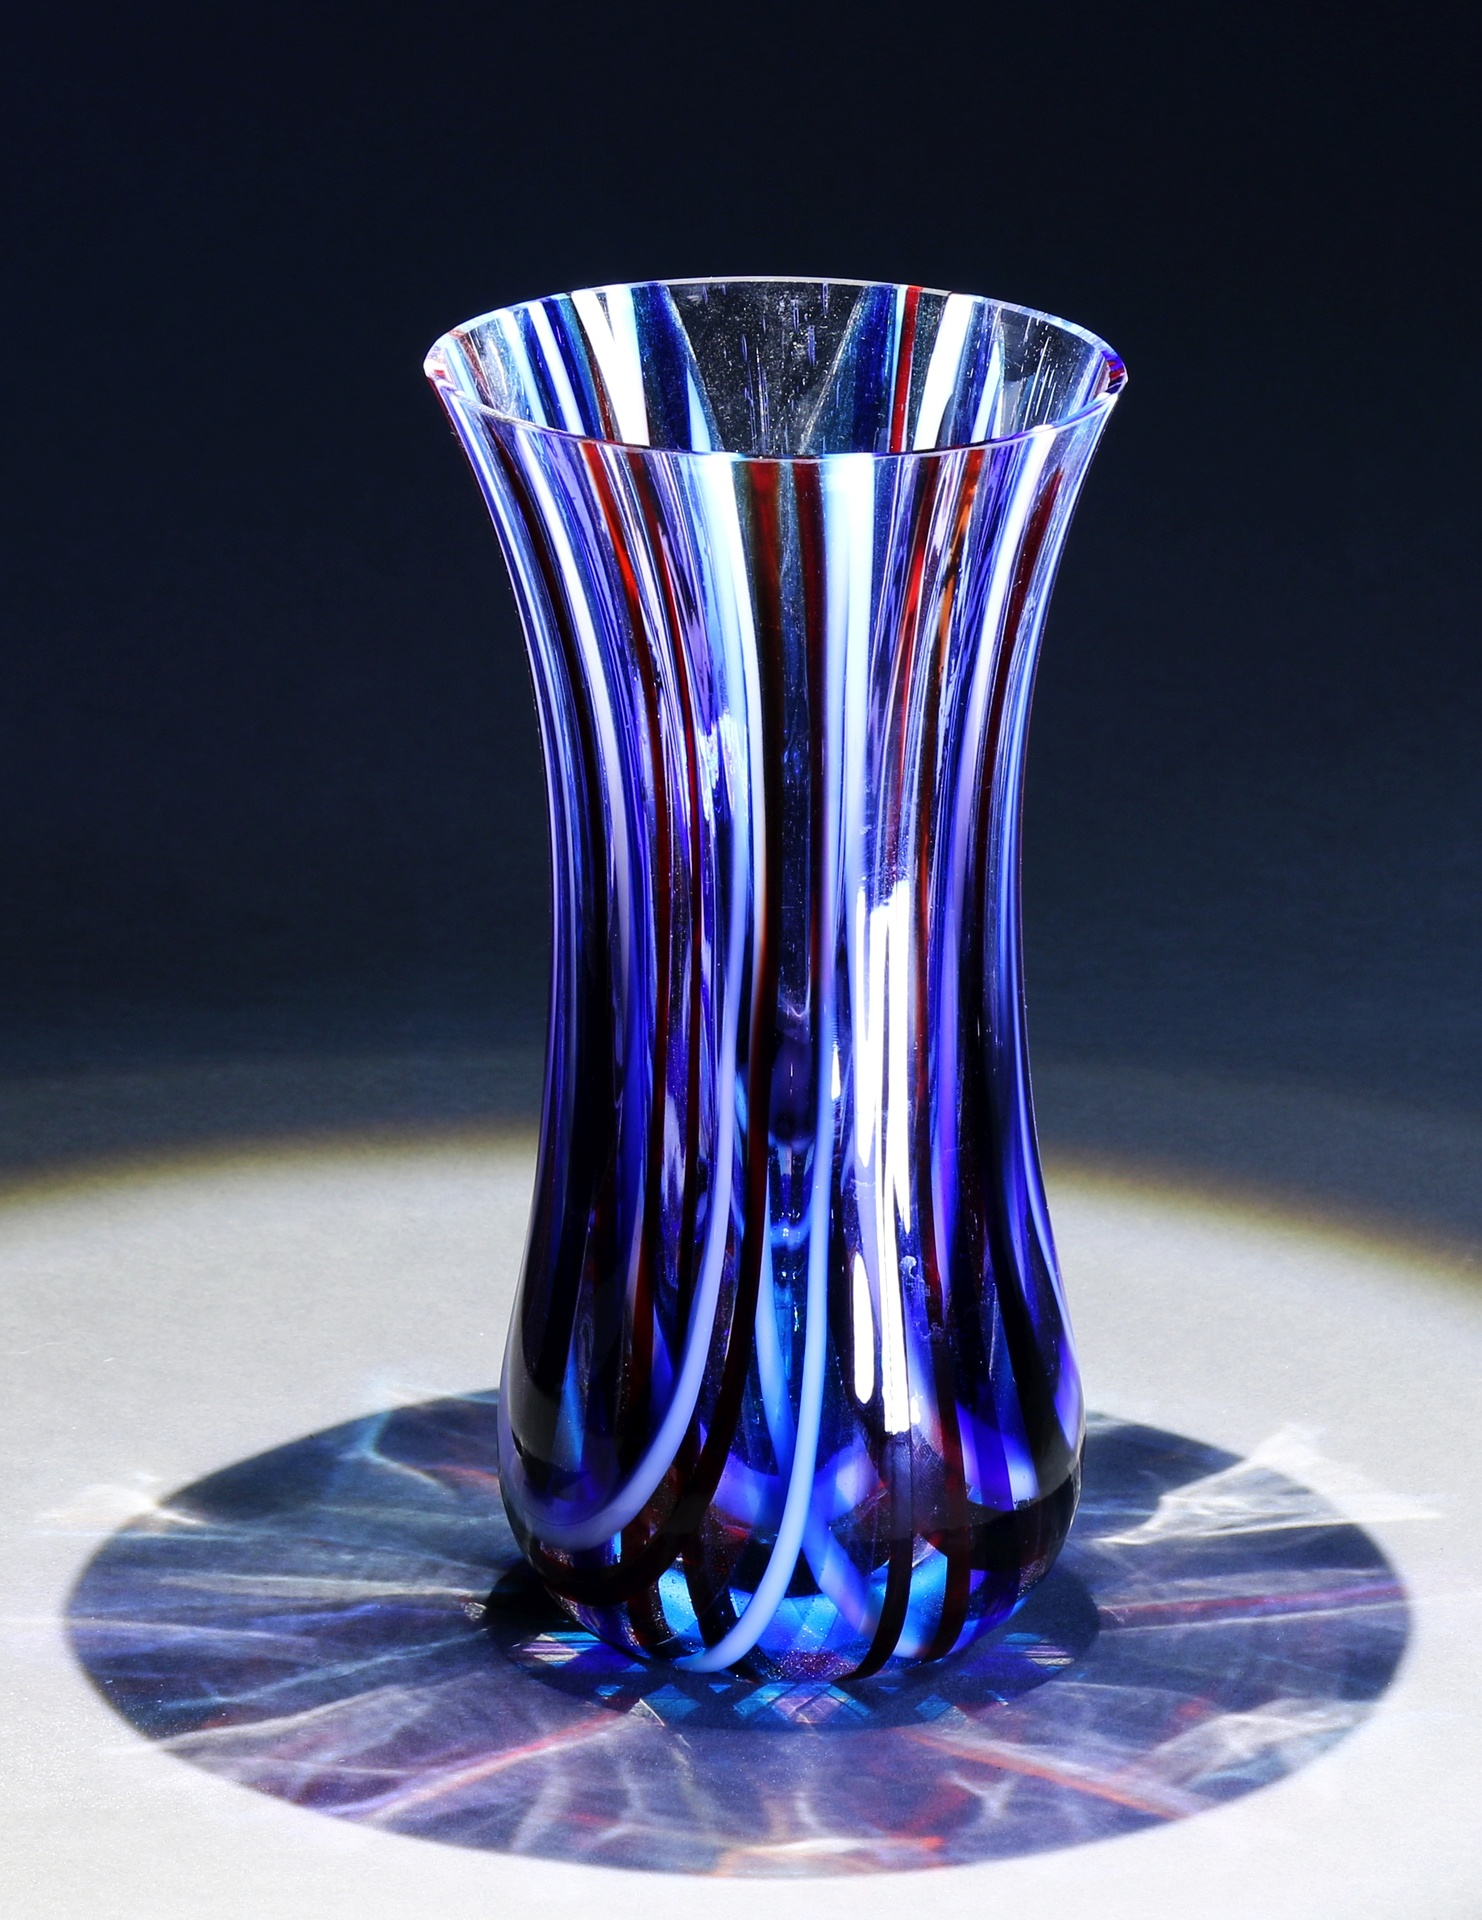 Red, White and Blue striped vase